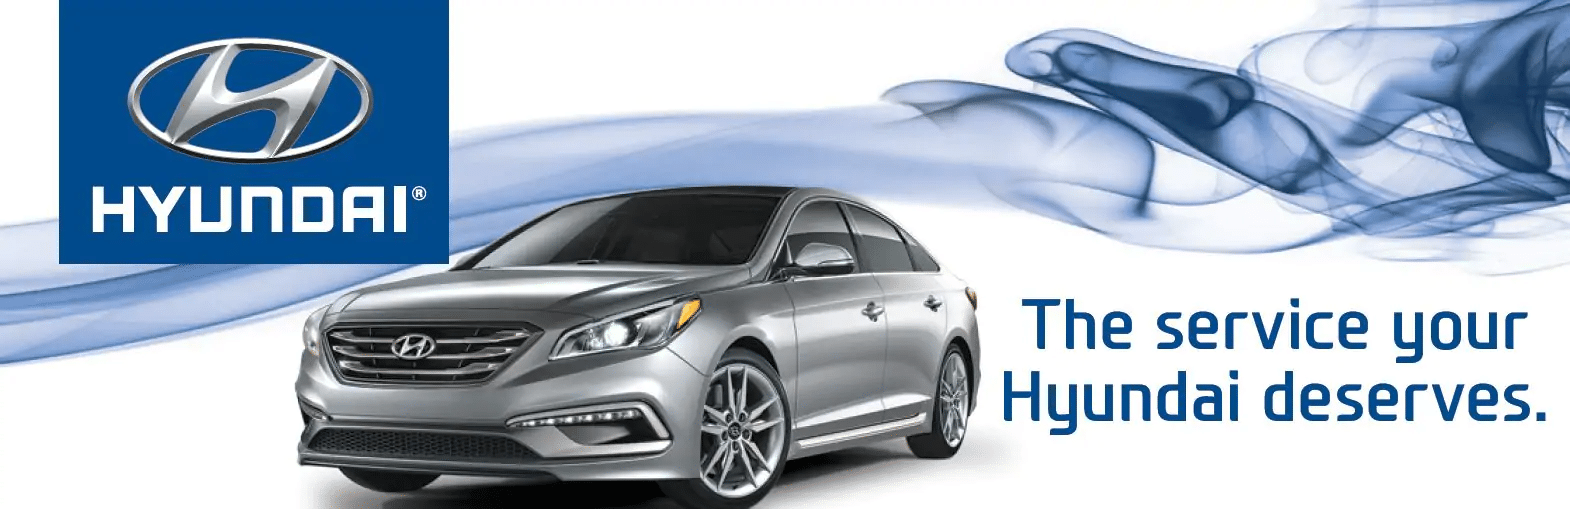 Hyundai CA Warranty in British Columbia | Service Department | Campbell River Hyundai